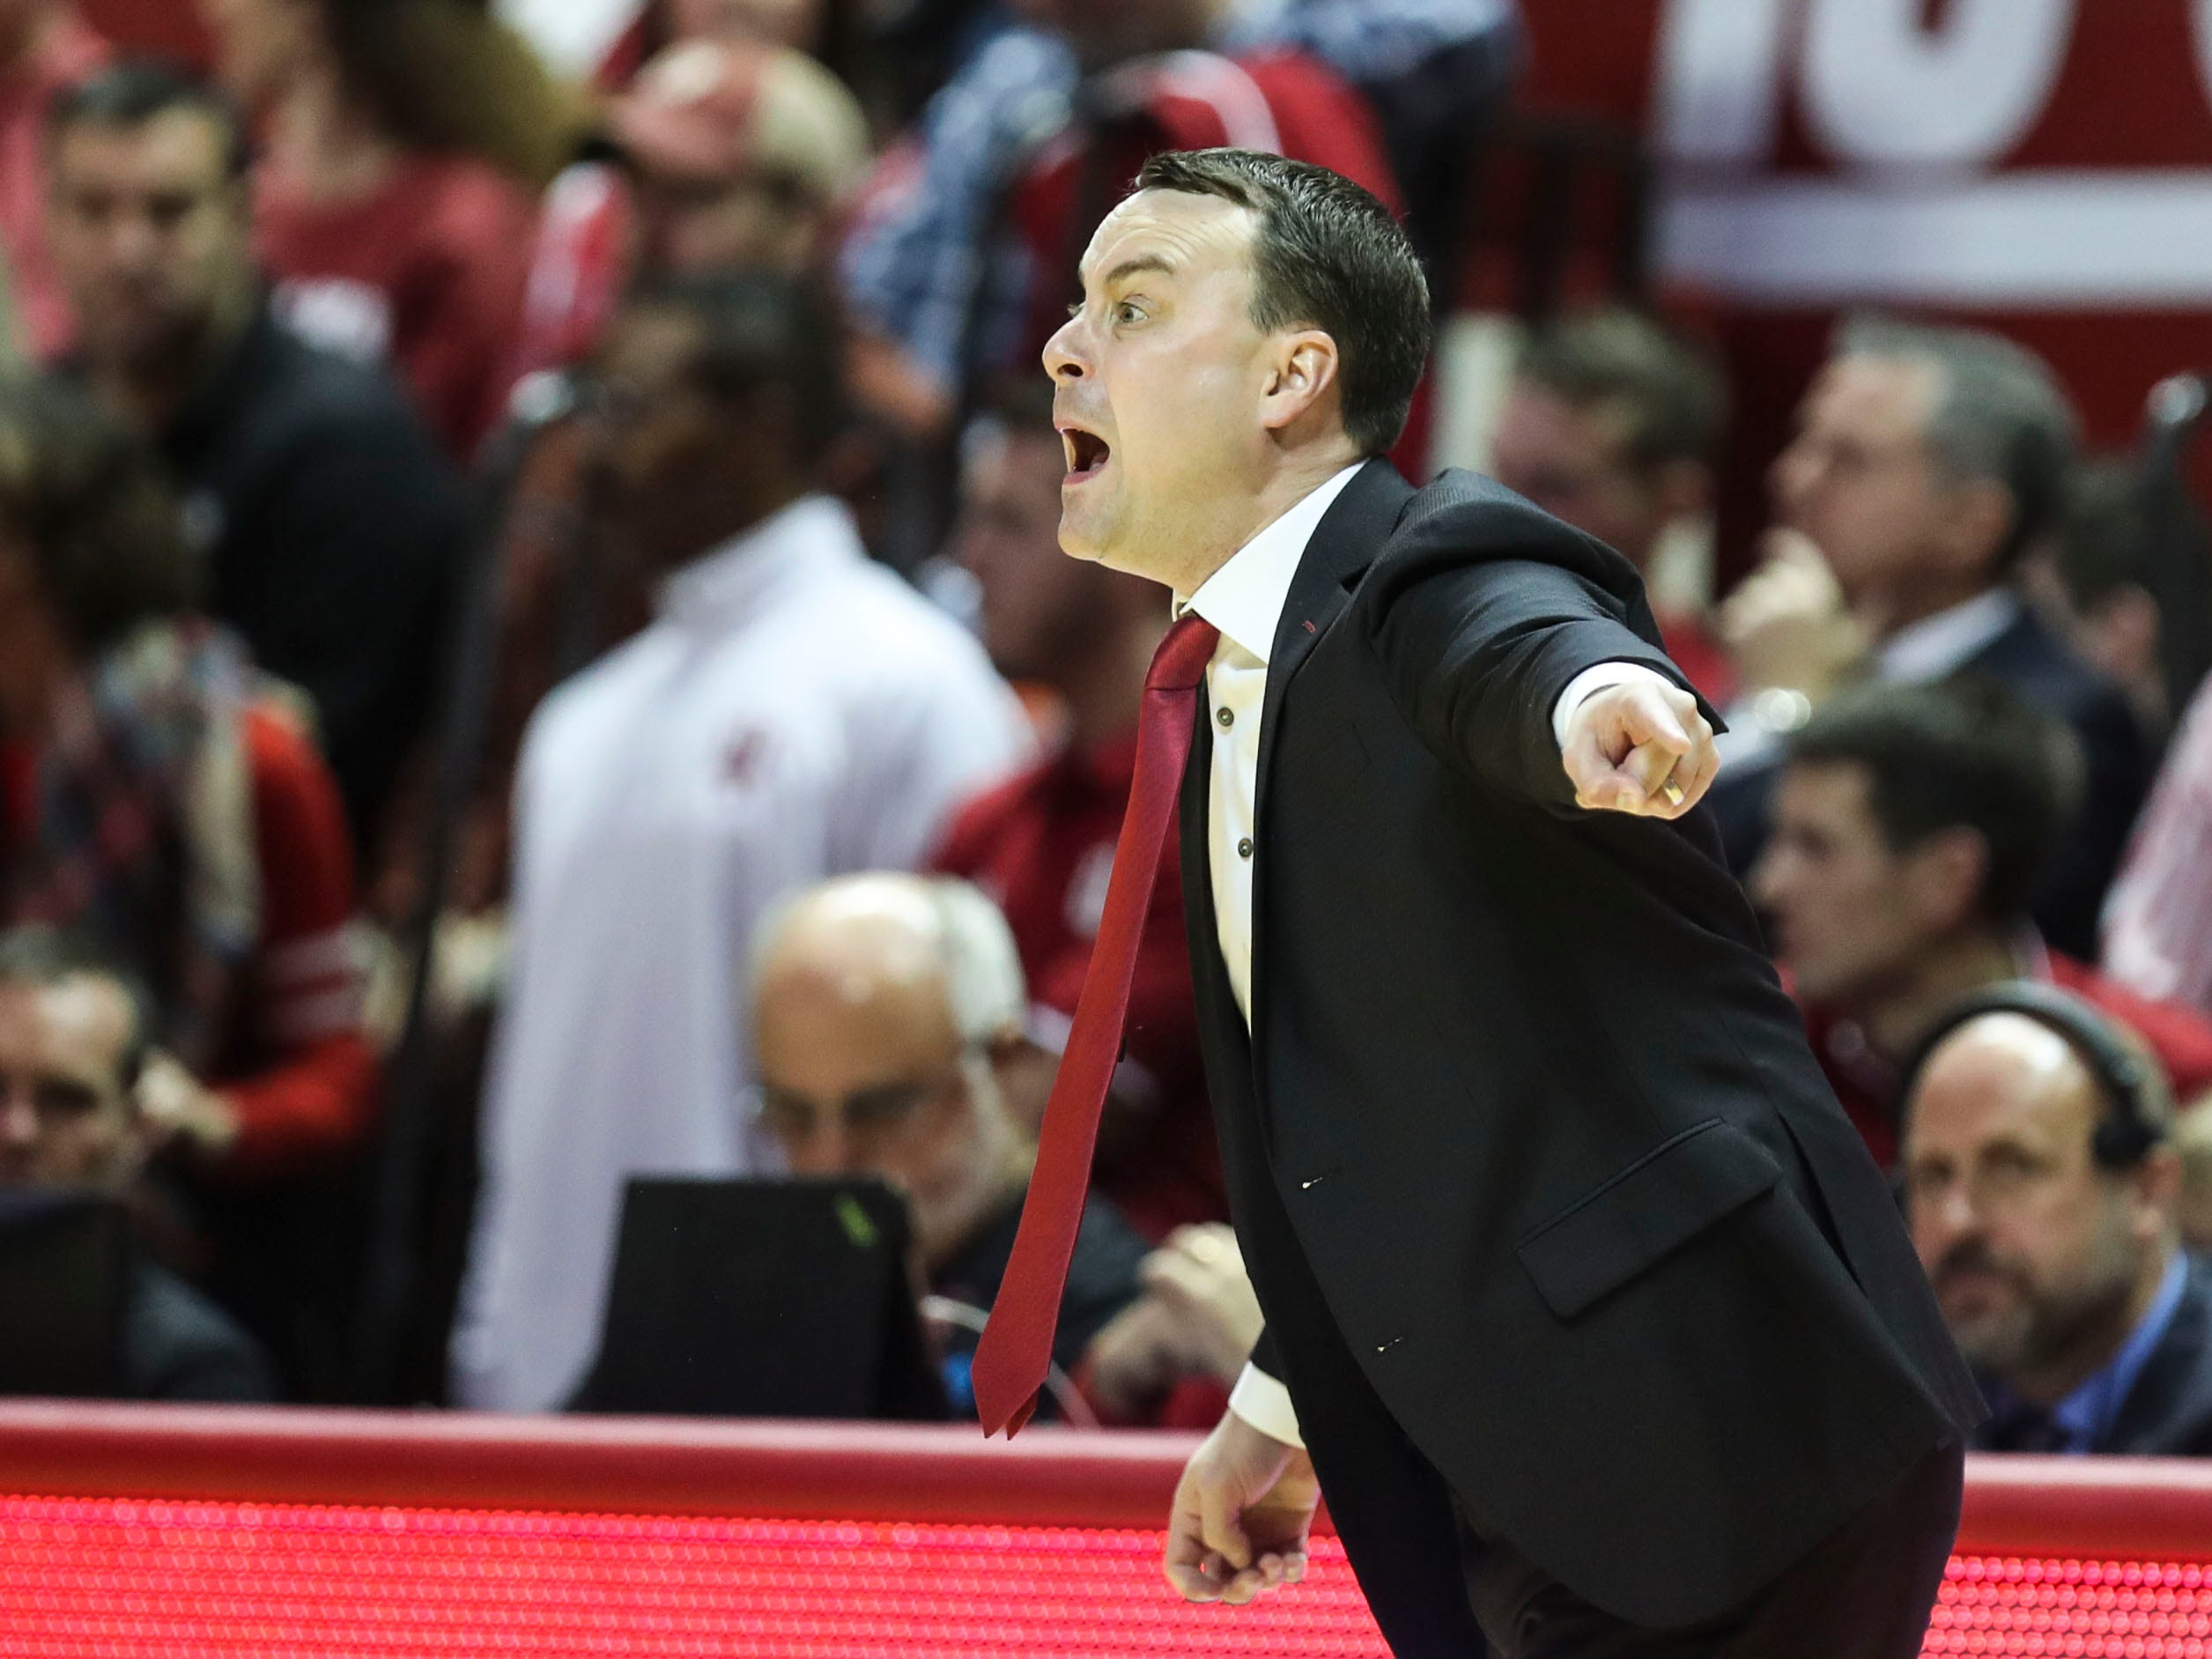 Archie Miller of Indiana wasn't happy early in the first half as Louisville jumped out to an early lead. But the Hoosiers pushed for points inside and beat Louisville 68-67 Saturday, Dec. 8, 2018.